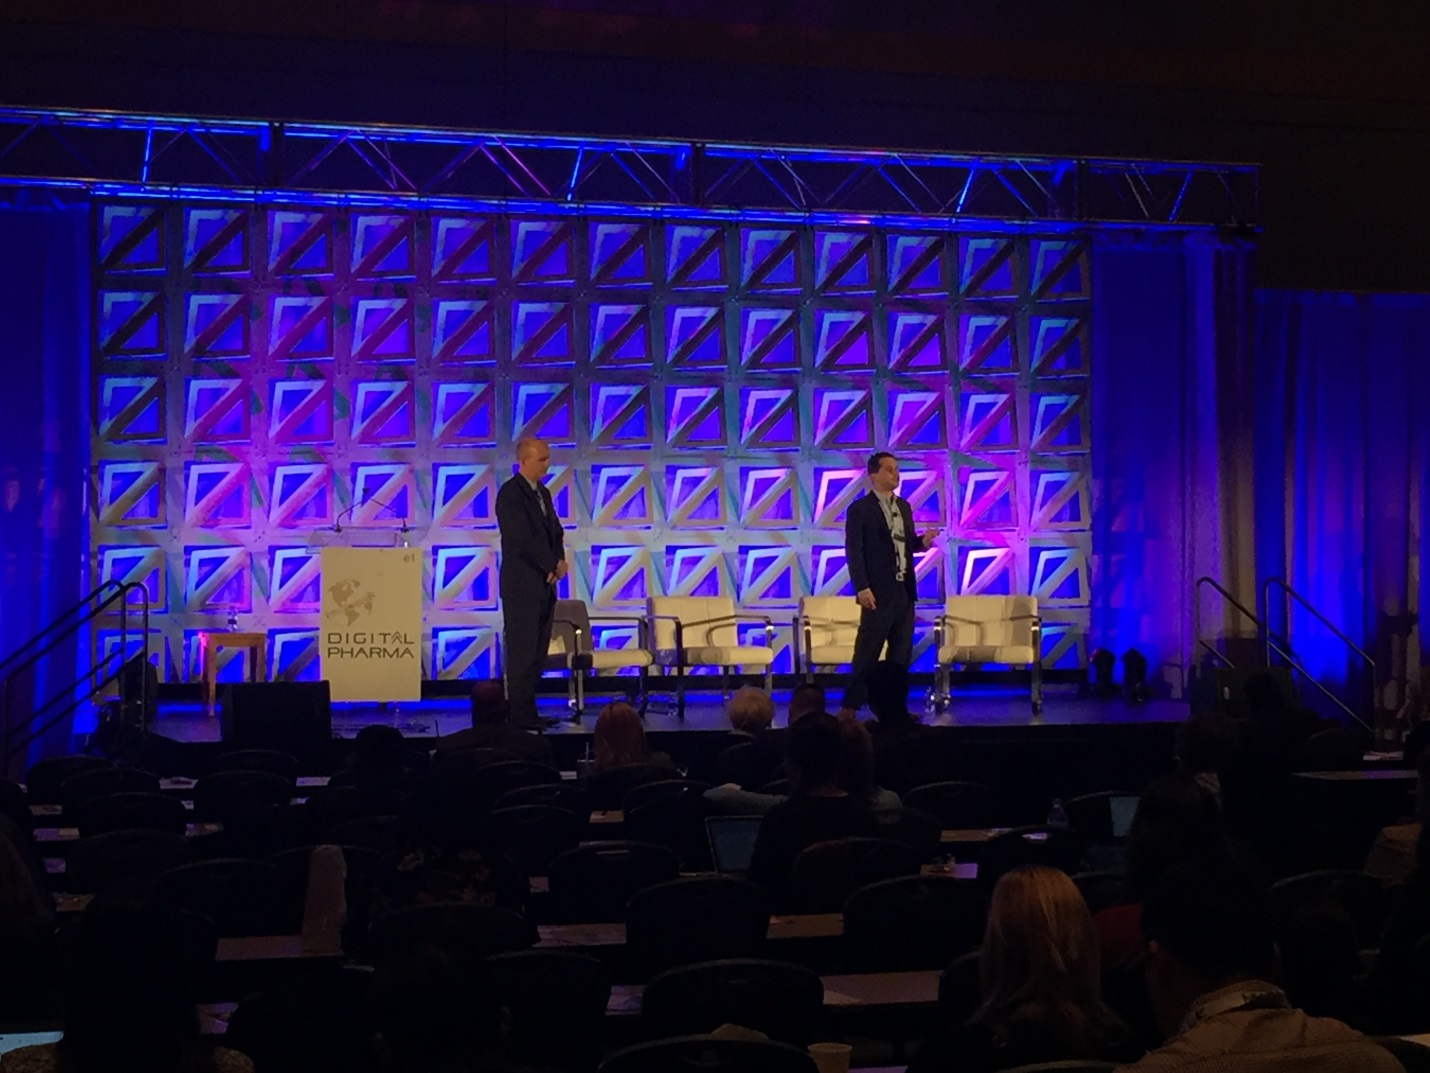 Digital Pharma East Day 2 Recap Syneos Health Communications Electricity In Action Booth Attending Panels And Giving A Keynote Its Been An Awesome Time To Get Some Sleep As We Have Another Packed Ahead